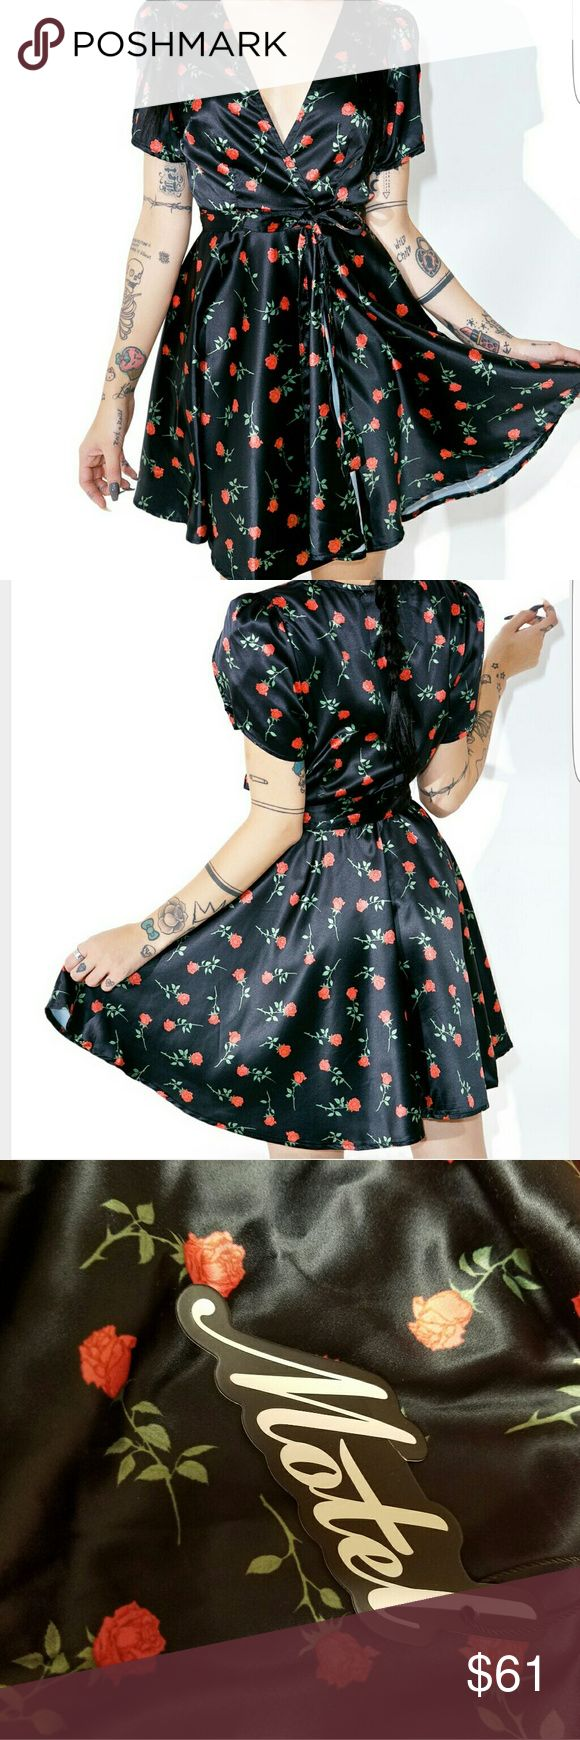 Motel Rose 'Vela' Wrap Dress from Dollskill Absolutely STUNNING rose satin dress! Sexy, vintage and all around gorgeous. You can pull this off with any type of shoe- heels, flats, boots...y'all this would look beautiful with anything. The floral pattern is so darling and it has a low cut and puffed sleeves so you'll feel like a real 60's gal. The dress is a M/L but could probably fit a small as well :) Dollskill Dresses